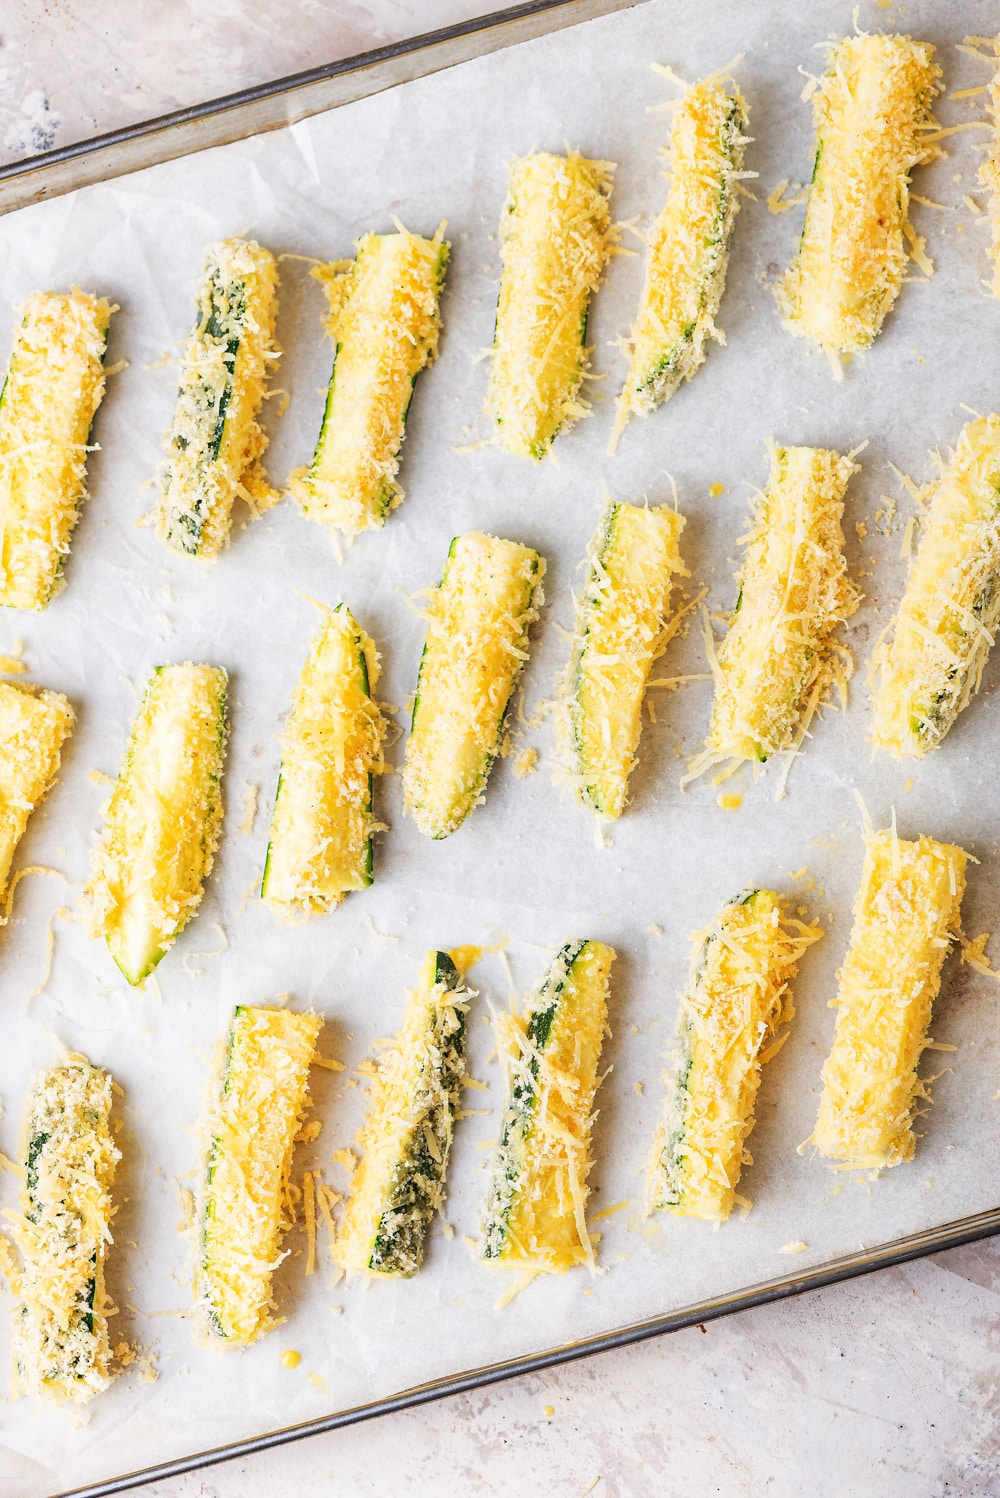 Slices of uncooked zucchini coated in breading laying on a baking sheet.